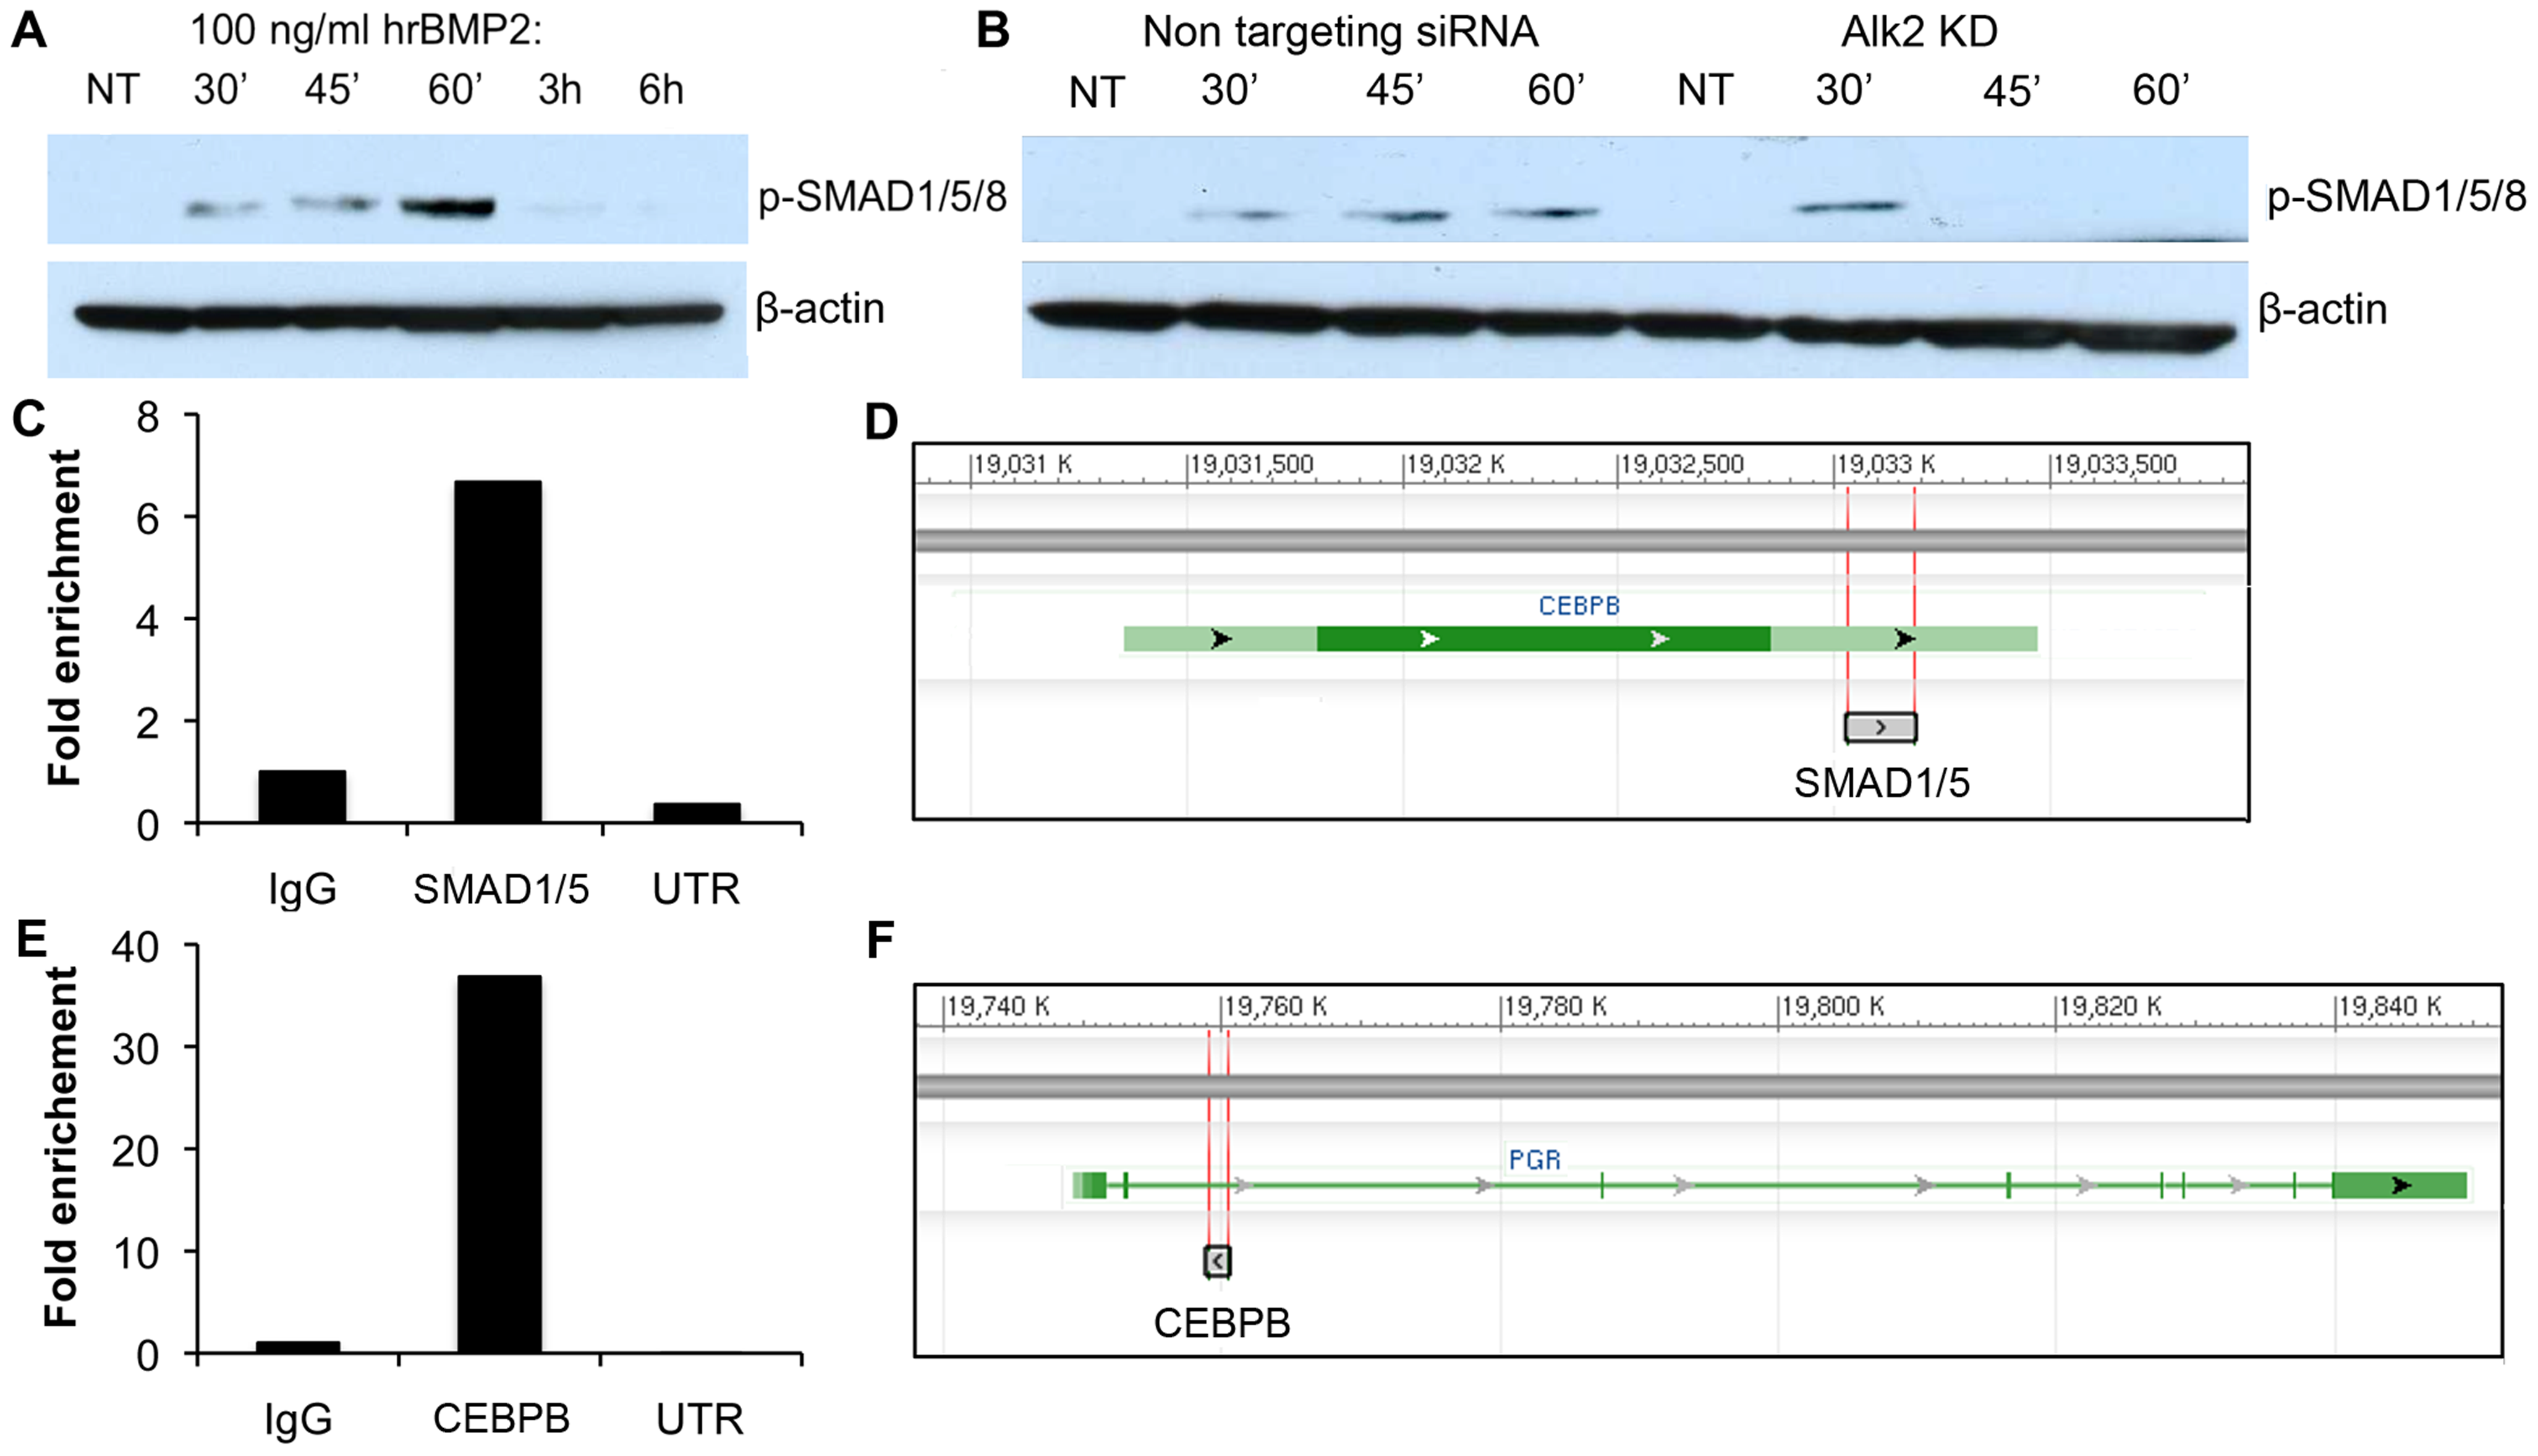 SMAD1,5,8 phosphorylation in hrBMP2-treated human endometrial stromal cells and SMAD1/5 and CEBPB ChIP experiments.